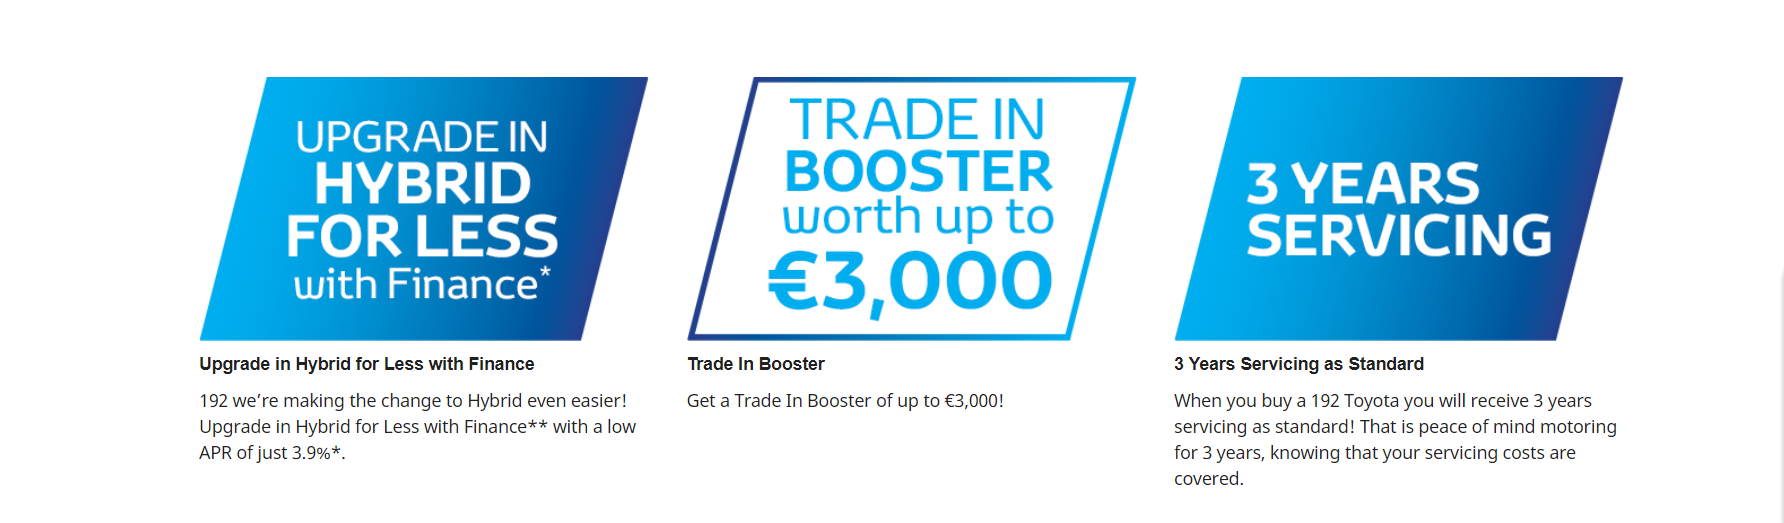 hybrid for less trade in booster 3 years servicing